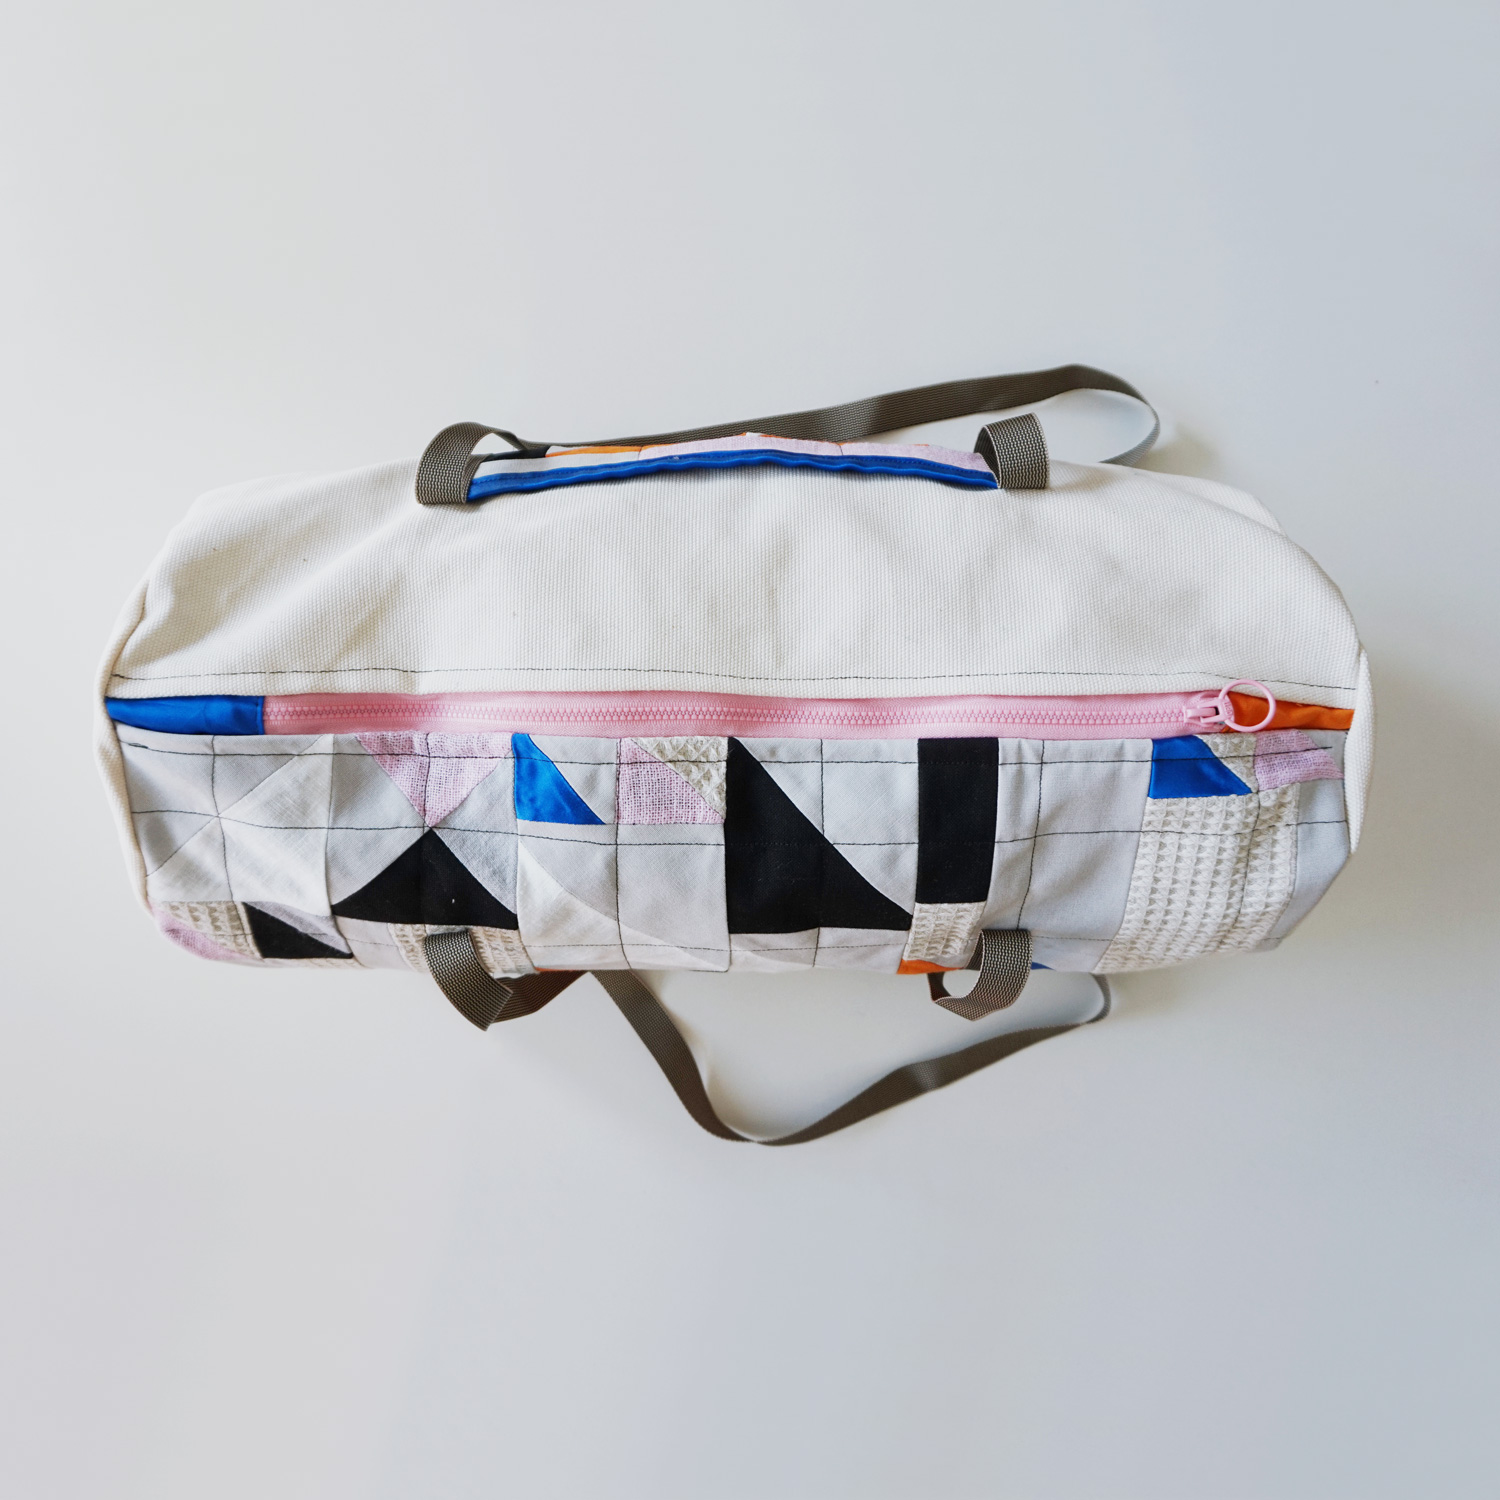 A geometric and sturdy duffle bag that fits all your workout gear or weekend essentials.